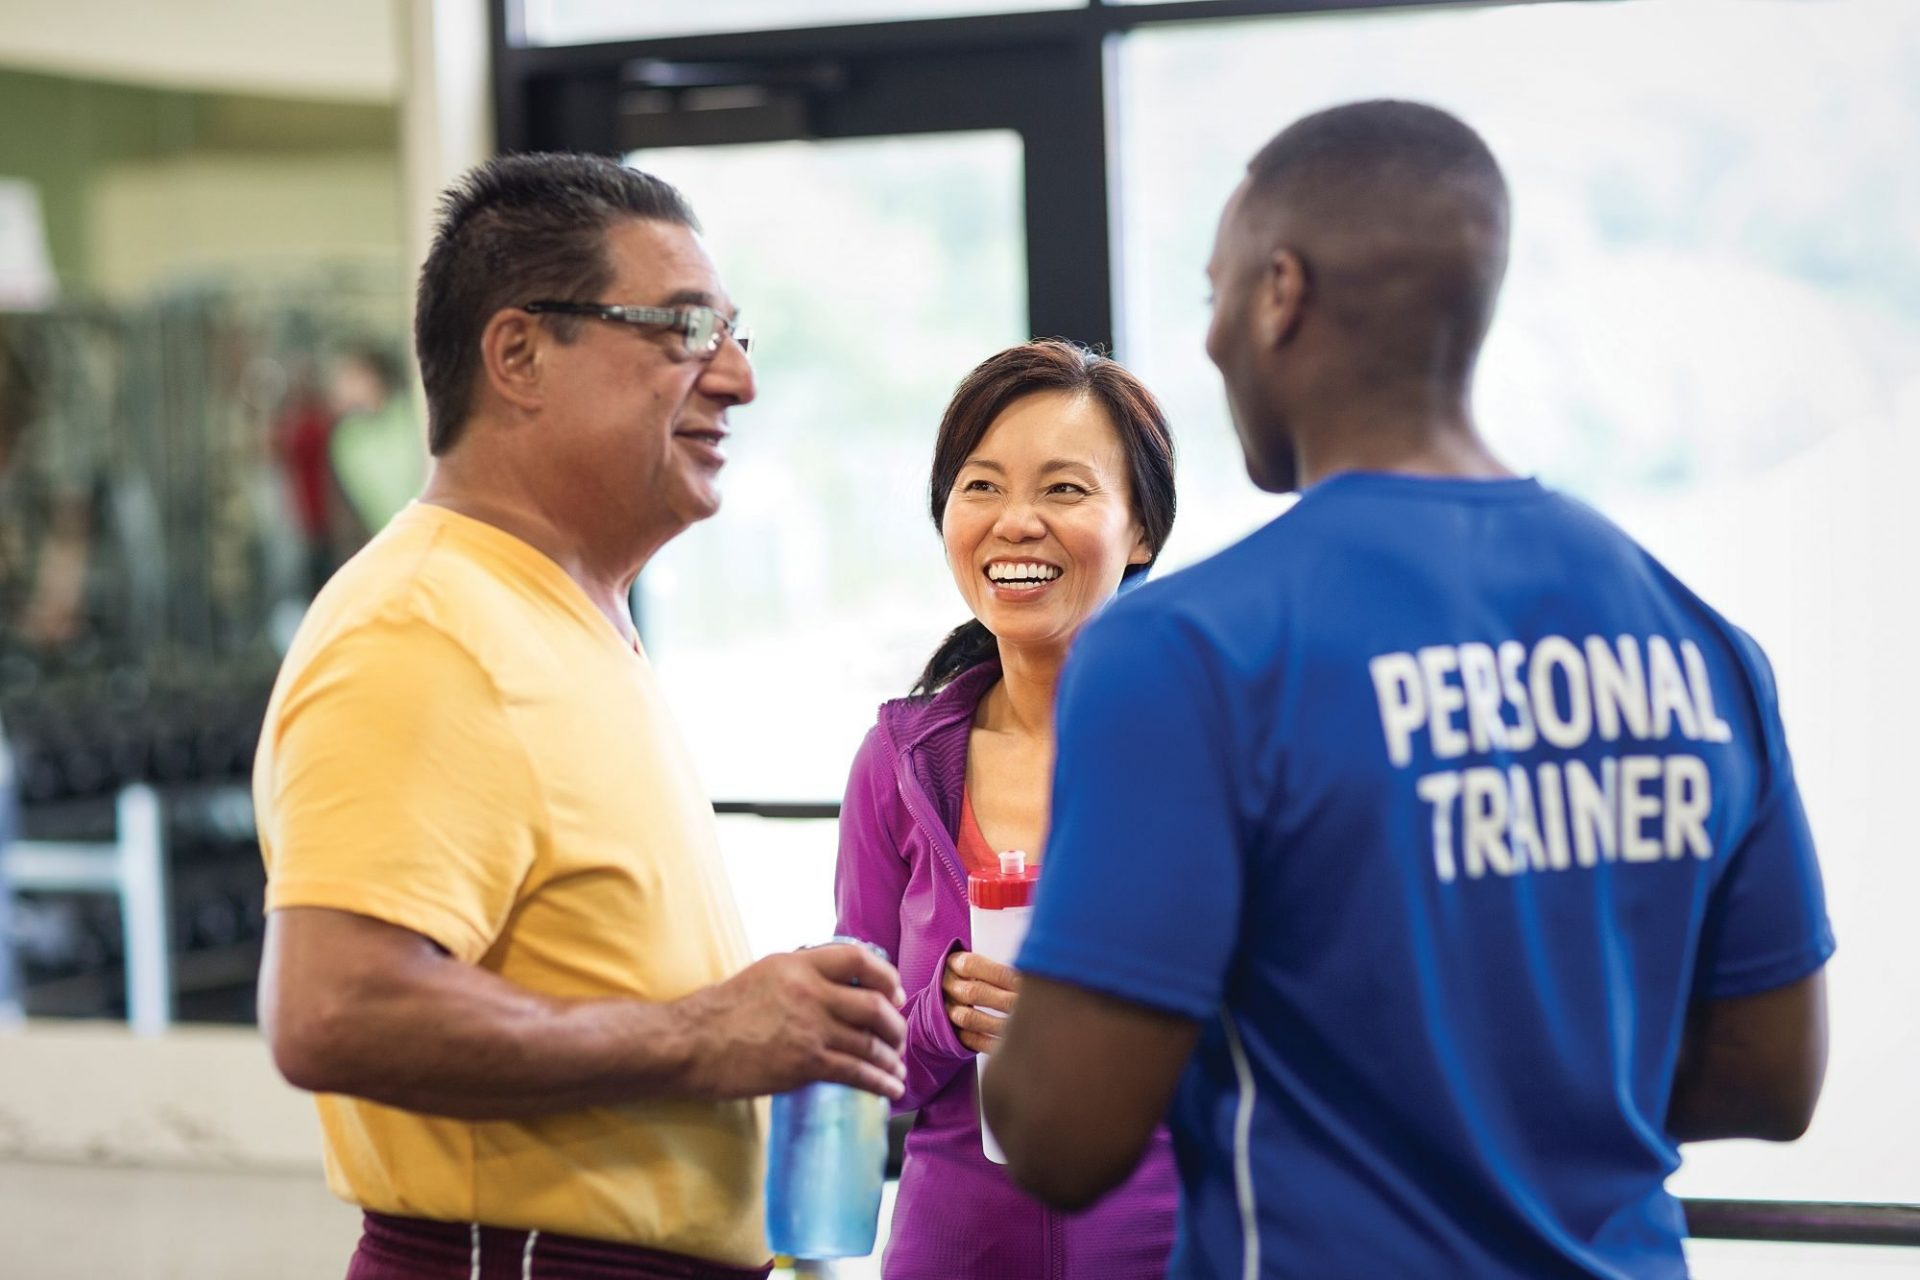 Personal Training | Adult Fitness | Ransburg Y | YMCA of Greater Indianapolis